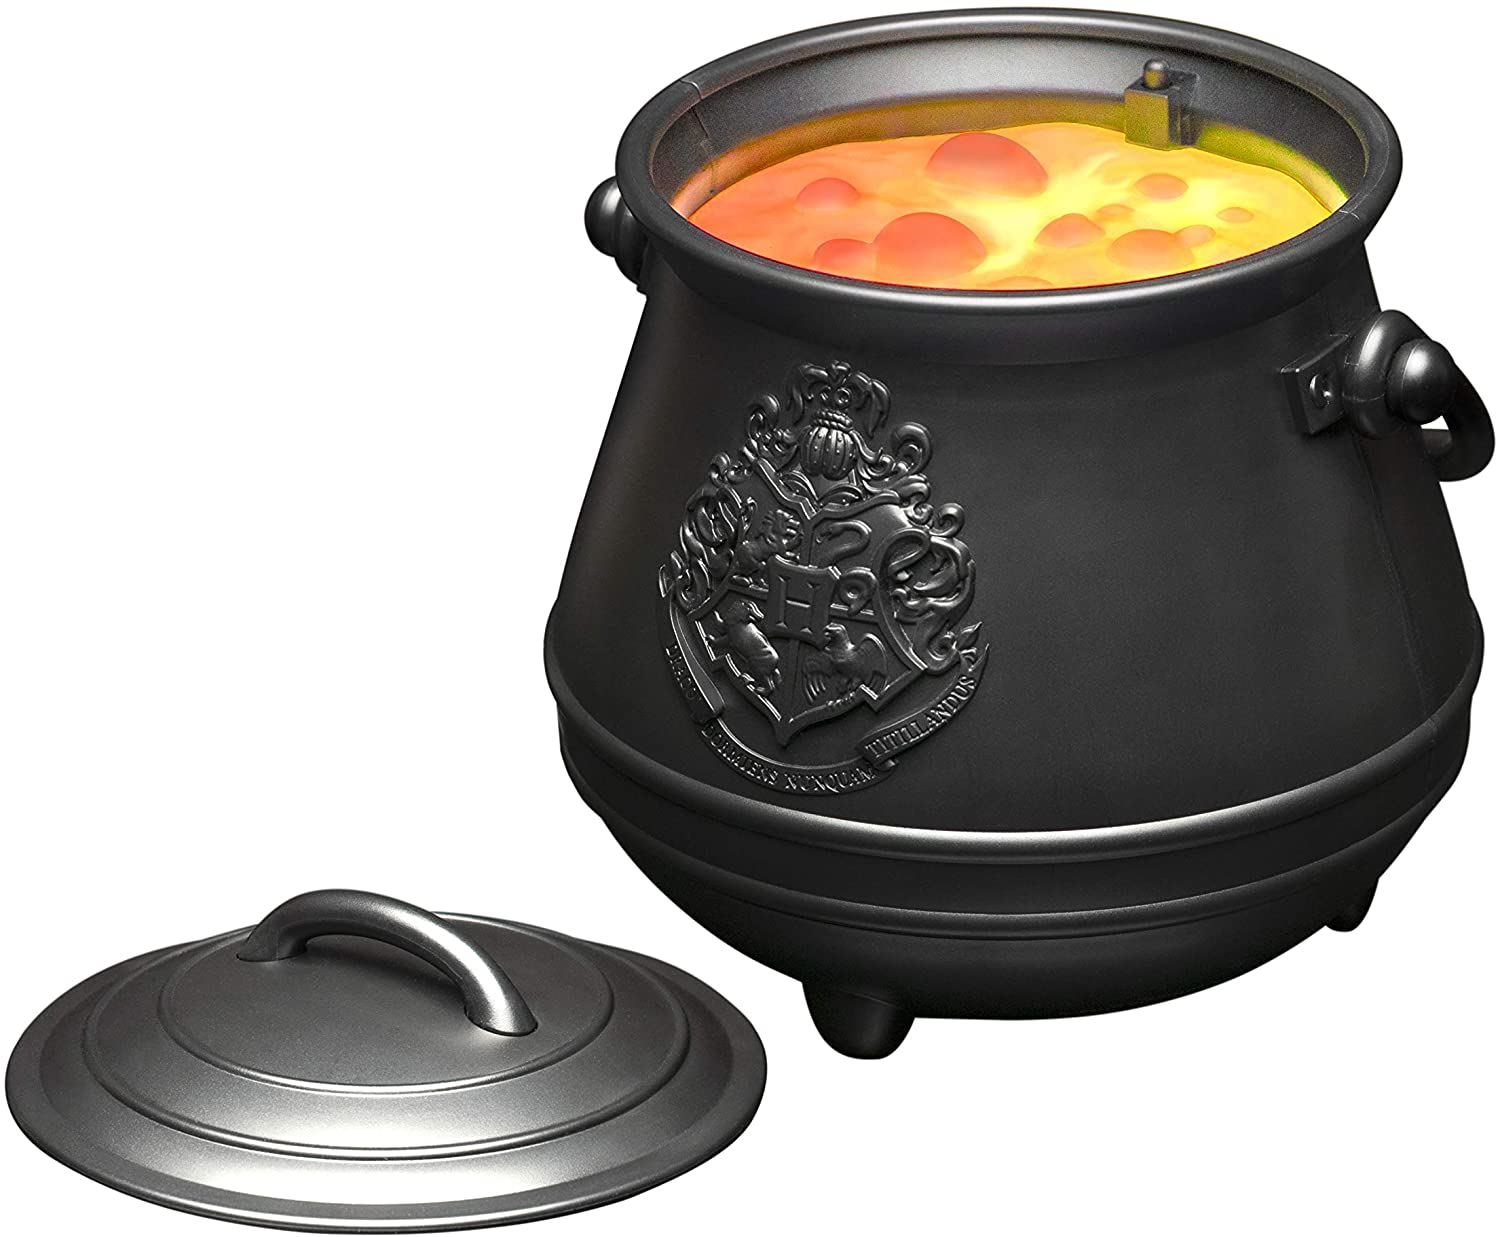 Harry Potter: Cauldron Light with Color Changing Bubbling Effect   Harry Potter gift ideas   cool Harry Potter gift ideas   magical Harry Potter gift ideas   cute Harry Potter gift ideas   what to gift a harry potter fan   what is the best gift for a harry potter fan   the ultimate harry potter gift   the best harry potter gift ideas   harry potter gift for girl   harry potter gift for teacher   harry potter gift for kids   harry potter gift to buy   harry potter gift for adults   harry potter gift for him   harry potter gift for her   harry potter gift for boyfriend   harry potter gift for girlfriend   harry potter gift amazon   harry potter anniversary gift   harry potter gift bag ideas   harry potter gift box ideas   harry potter gift guide   harry potter official gift shop   harry potter gift set   Harry Potter gift guide   the best harry potter gift ideas   what to get someone who loves harry potter   harry potter hufflepuff gift ideas   harry potter Gryffindor gift ideas   harry potter Ravenclaw gift ideas   harry potter Slytherin gift ideas   harry potter graduation gift ideas   good harry potter gift ideas   great harry potter gift ideas   harry potter baby shower gift ideas   harry potter themed wedding gift ideas   unique harry potter gift ideas   harry potter valentines gift ideas   potterhead gift ideas   best potterhead gifts   cool potterhead gift ideas   Harry Potter gifts for men   Harry Potter gift box   Harry Potter gifts uk   harry potter gifts for tweens   harry potter gift basket   harry potter gift set   Harry Potter stocking stuffers   Harry Potter Christmas gifts   fantastic beasts gift guide